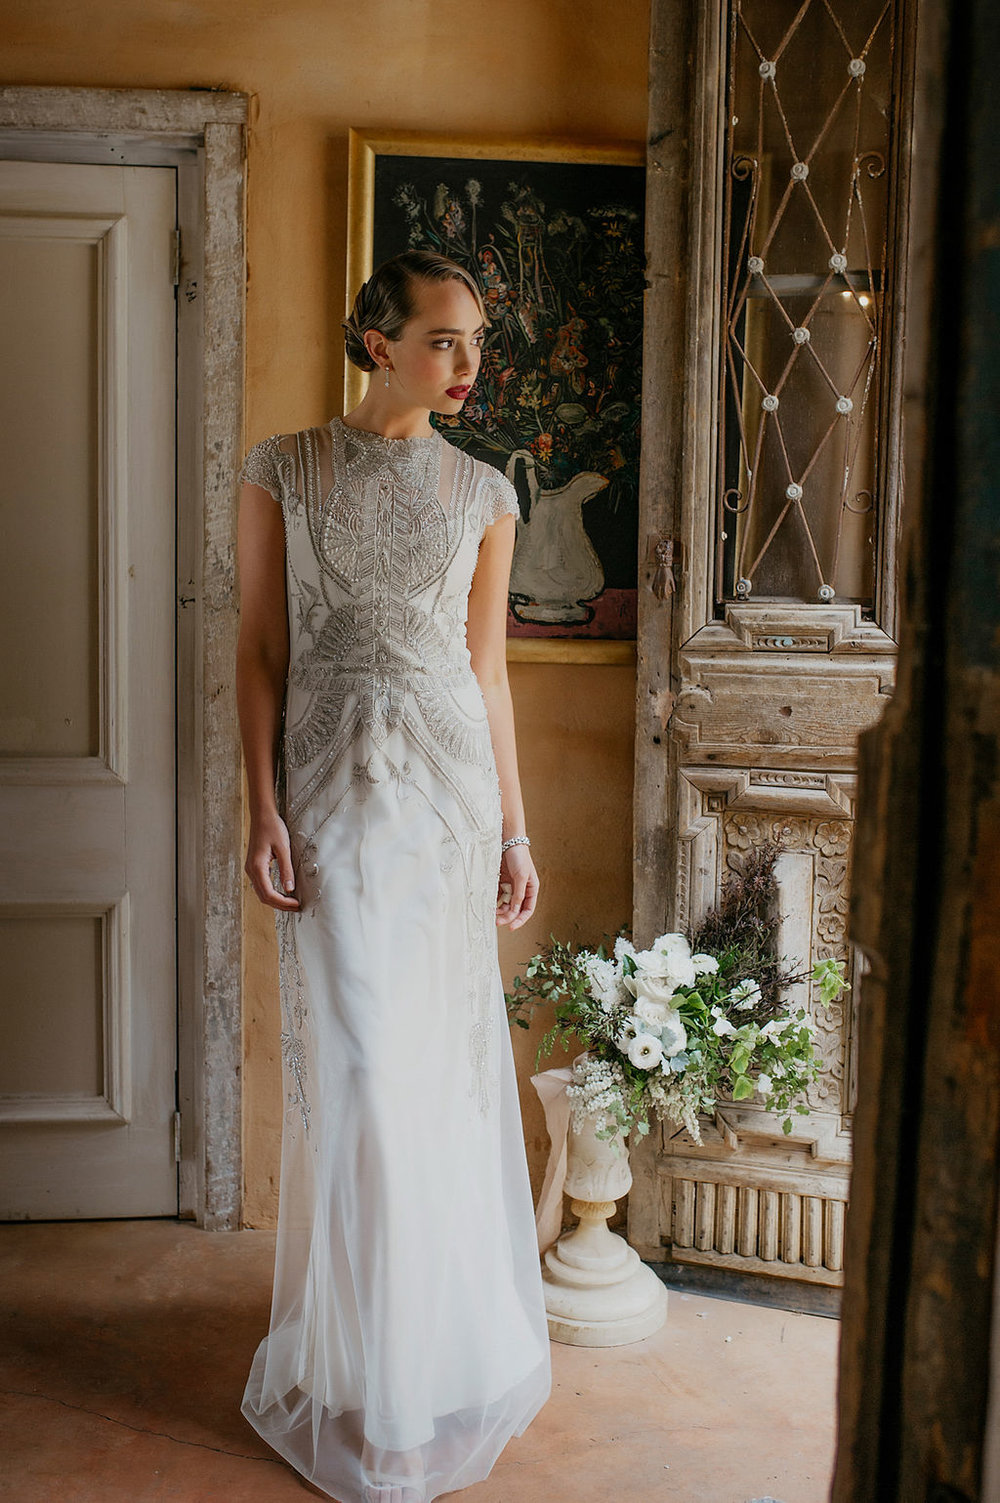 Polly Gwendolynne Wedding Dress  JessicaAbbyartdecoWEB-8509.jpg